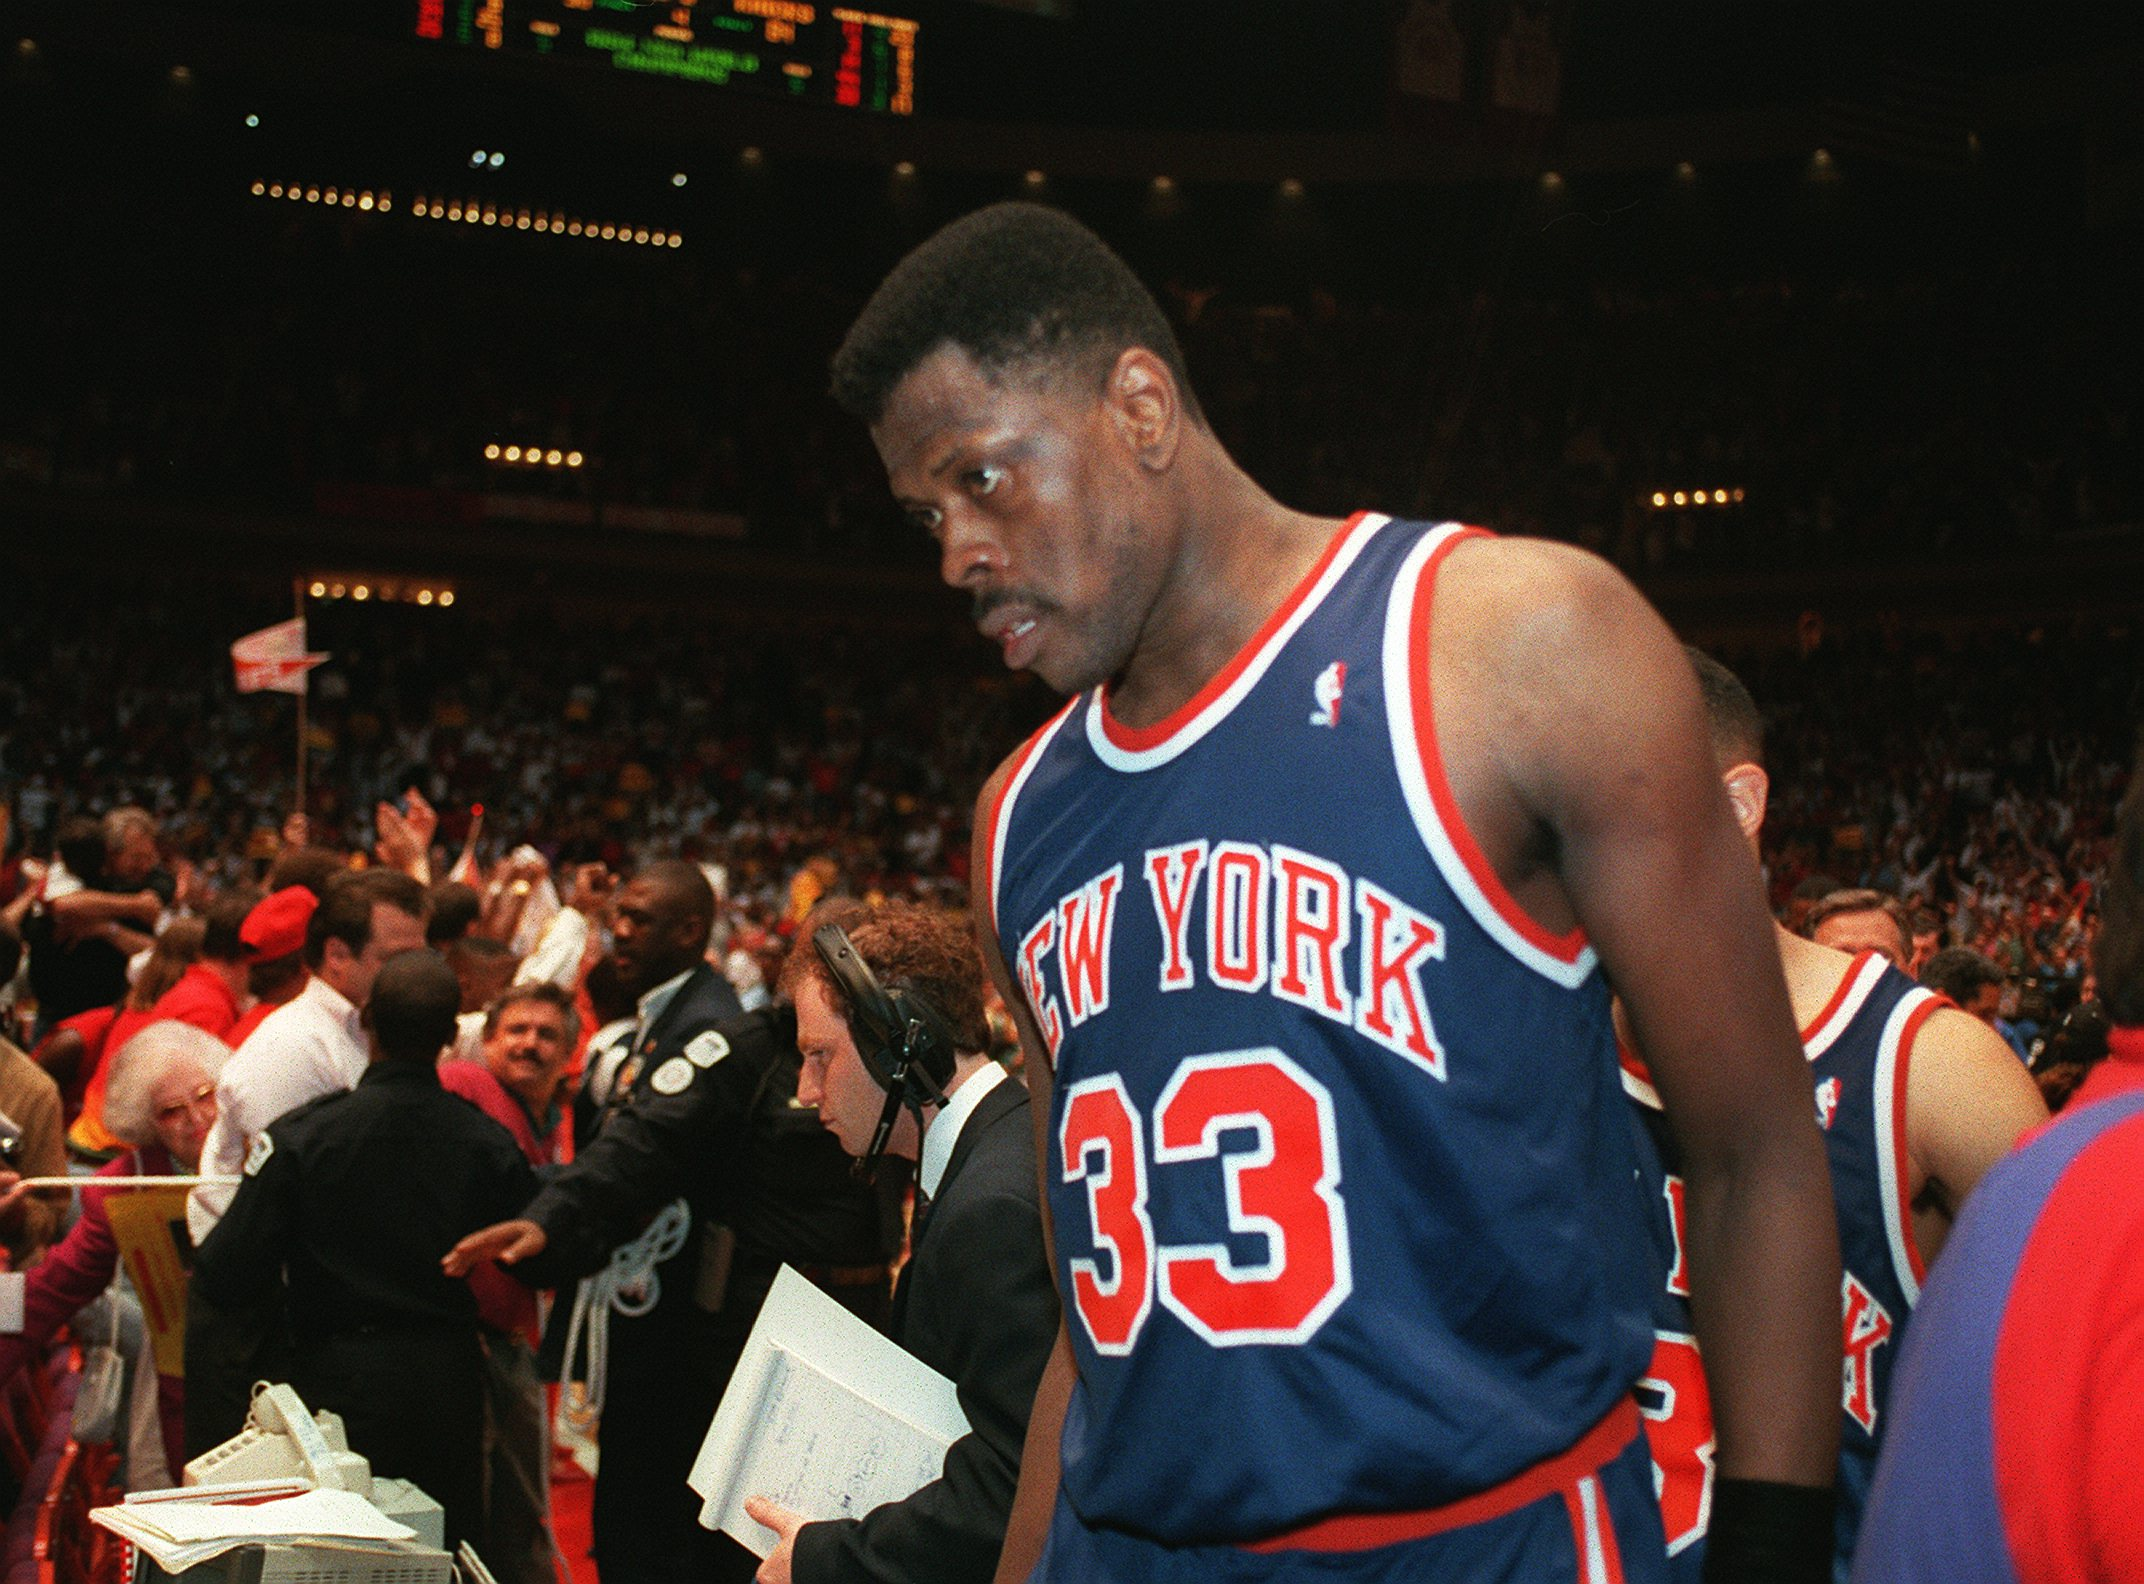 23 Jun 1994: NEW YORK KNICK PATRICK EWING WALKS OFF THE COURT FOLLOWING THE KNICK''S 90-84 LOSS TO THE HOUSTON ROCKETS FOR THE NBA CHAMPIONSHIP AT THE SUMMIT IN HOUSTON.